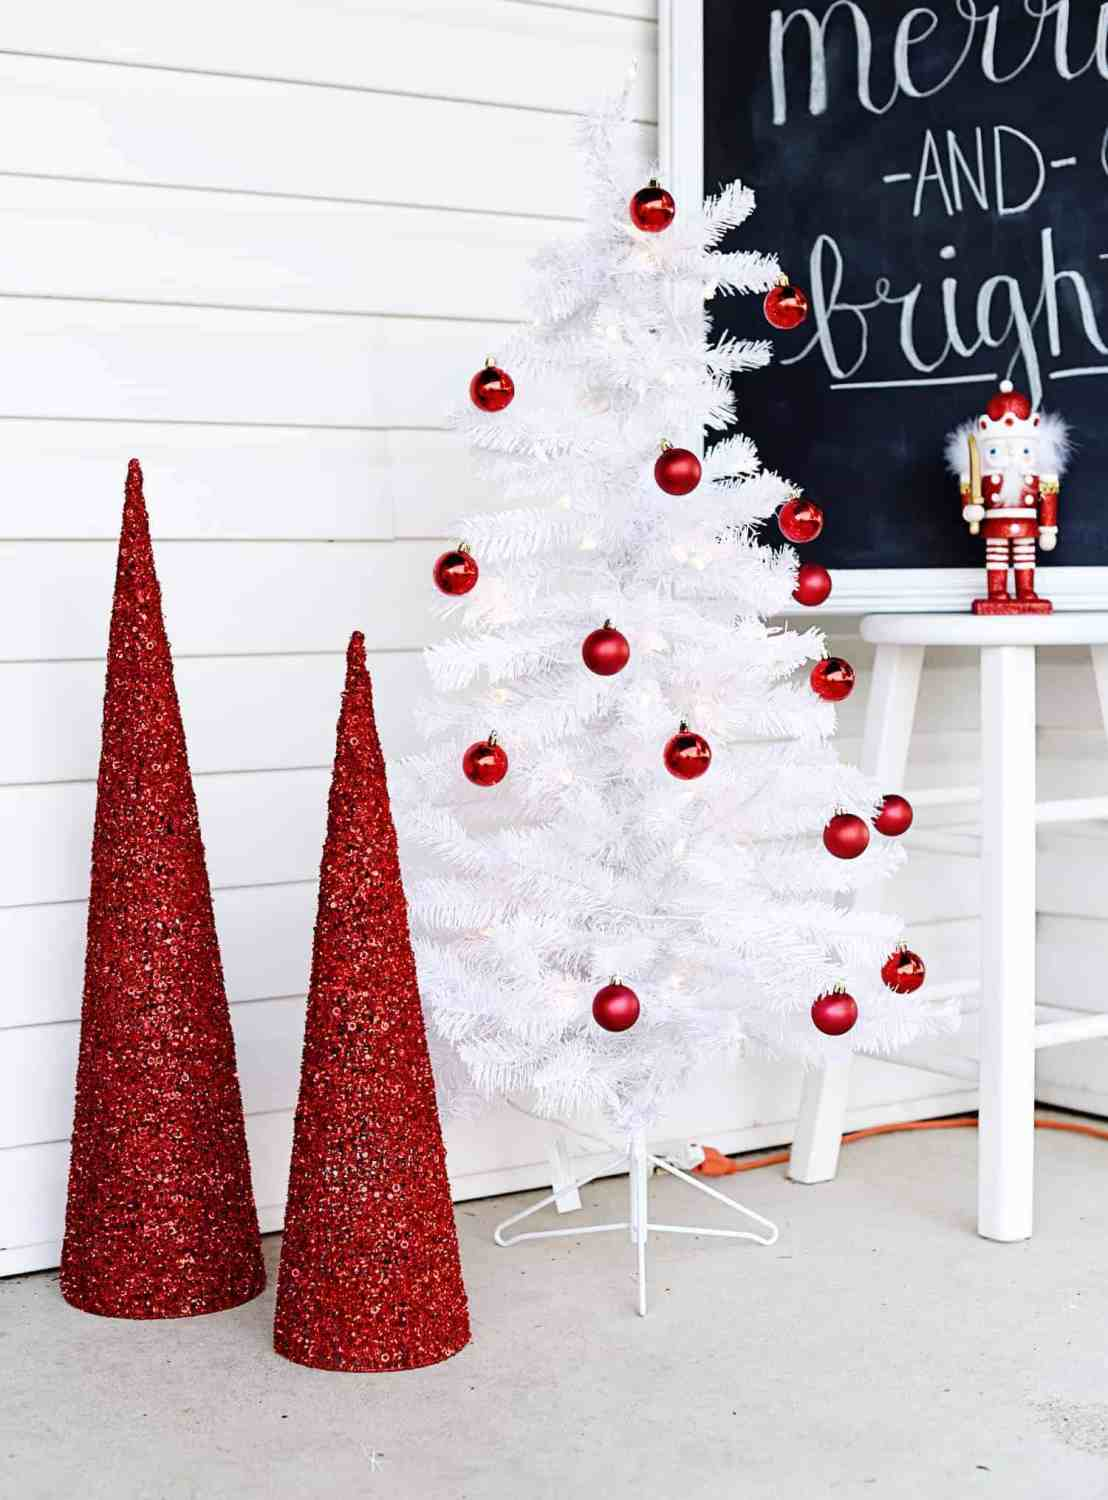 Christmas Front Porch Decor- When you're doing some holiday decorating, don't forget your front porch! Turn your front porch into a festive Christmas display with these simple and frugal decorations.